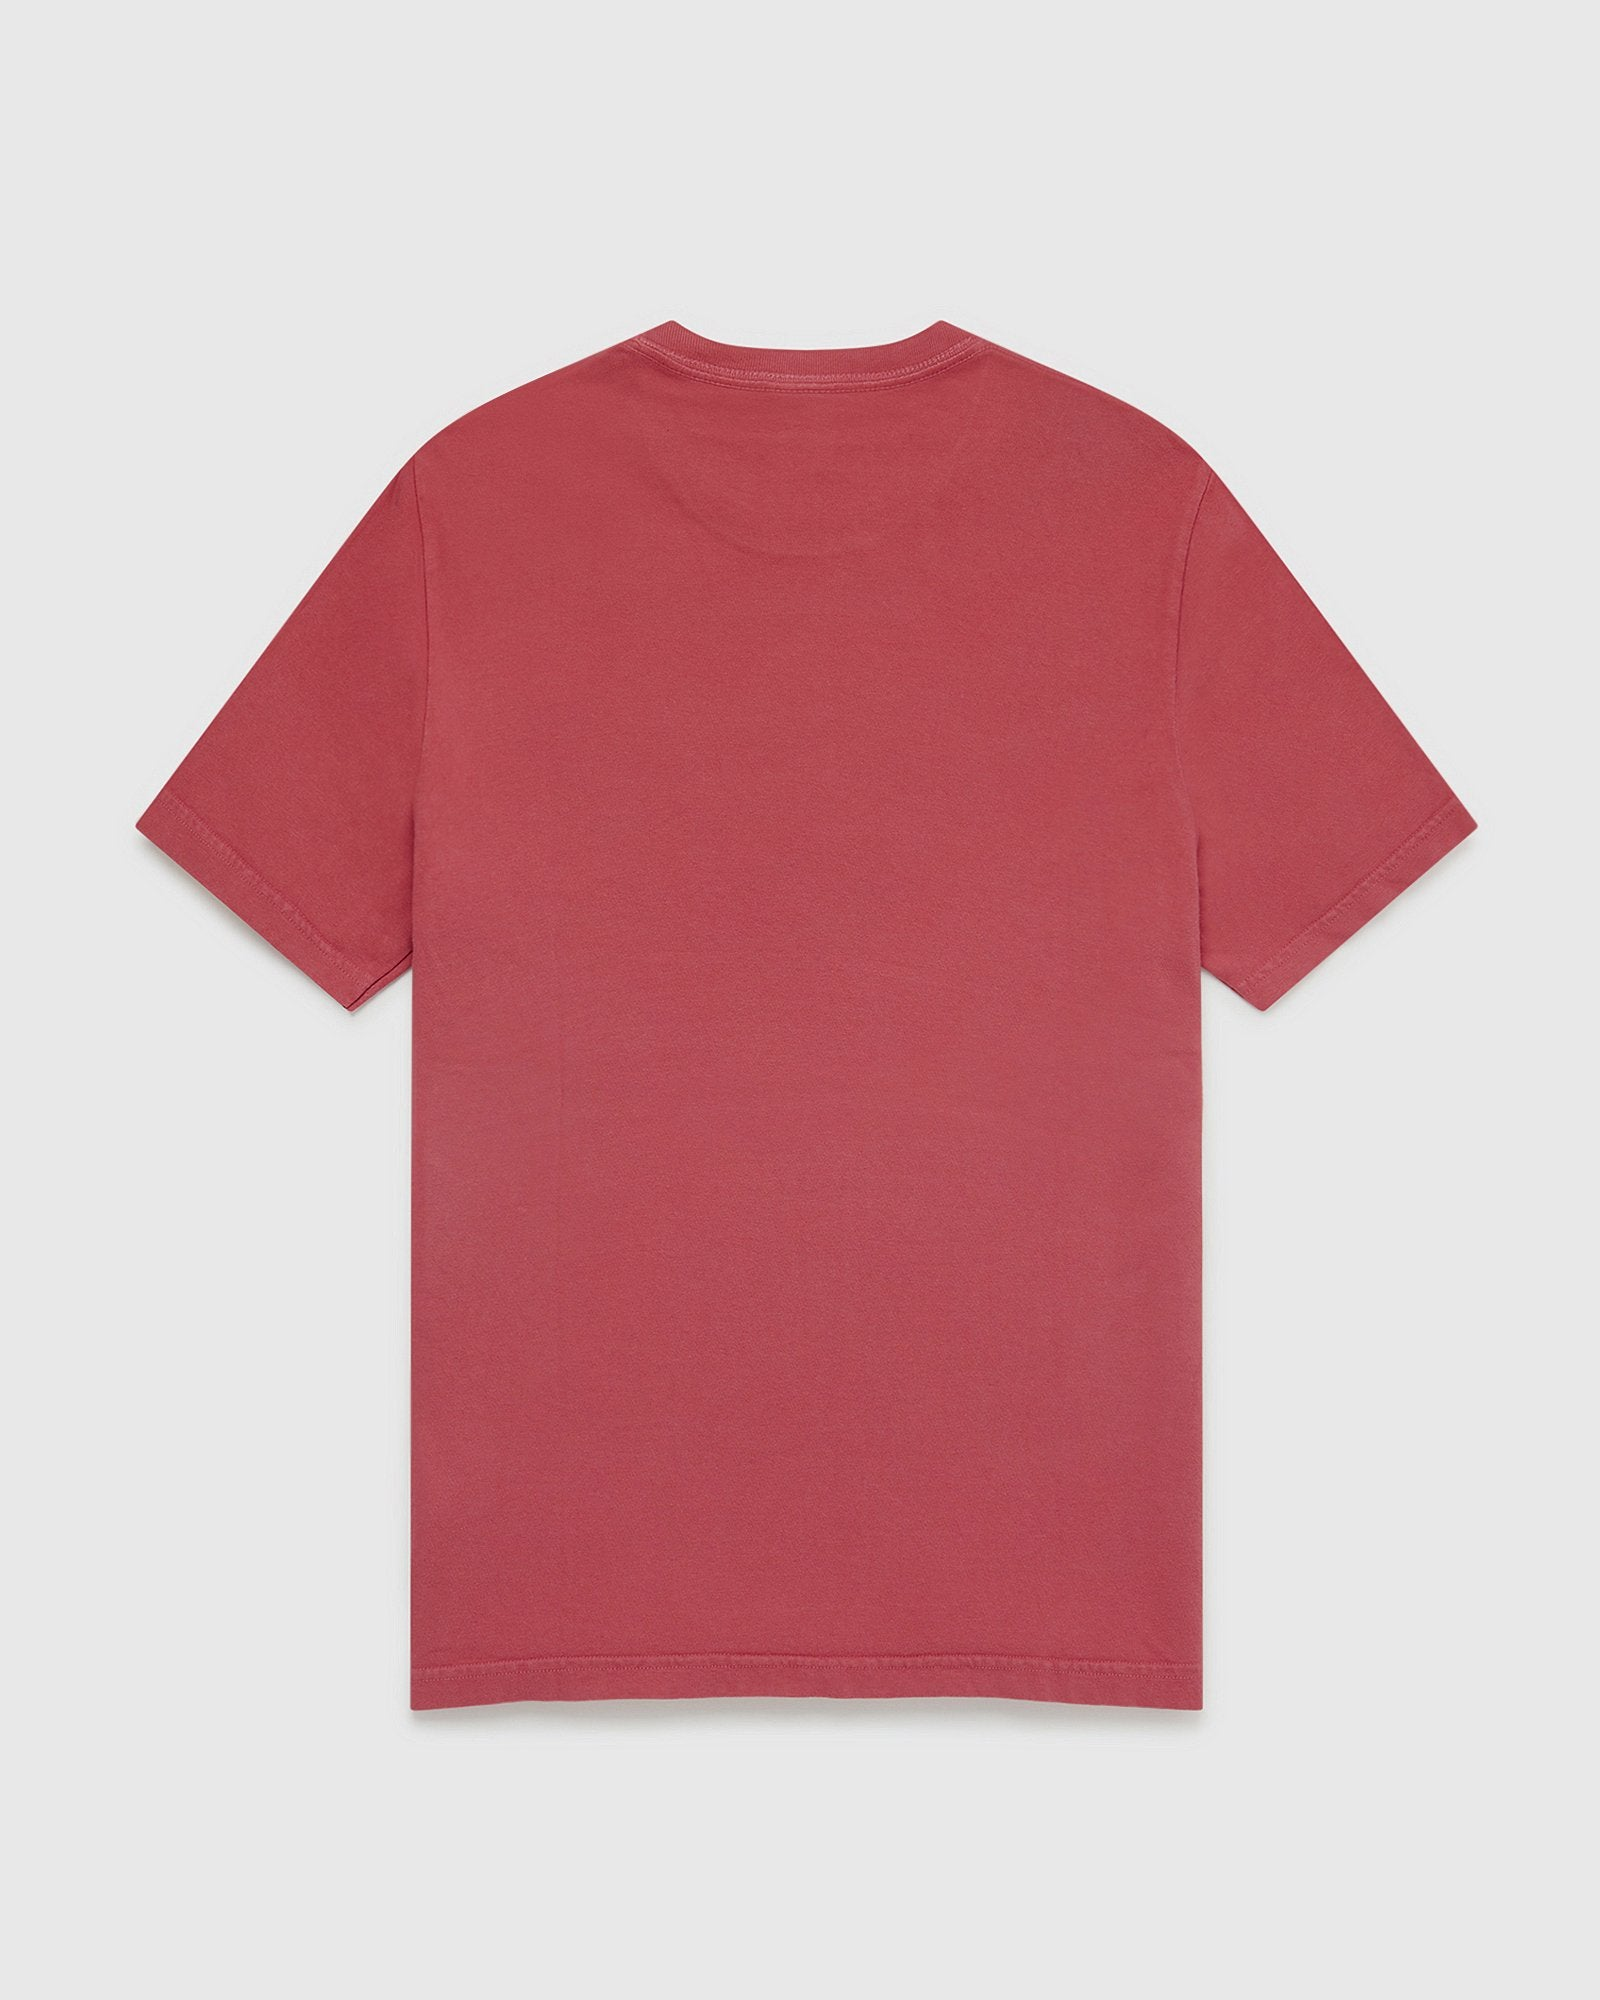 OVO GARMENT DYE T-SHIRT - RED IMAGE #2